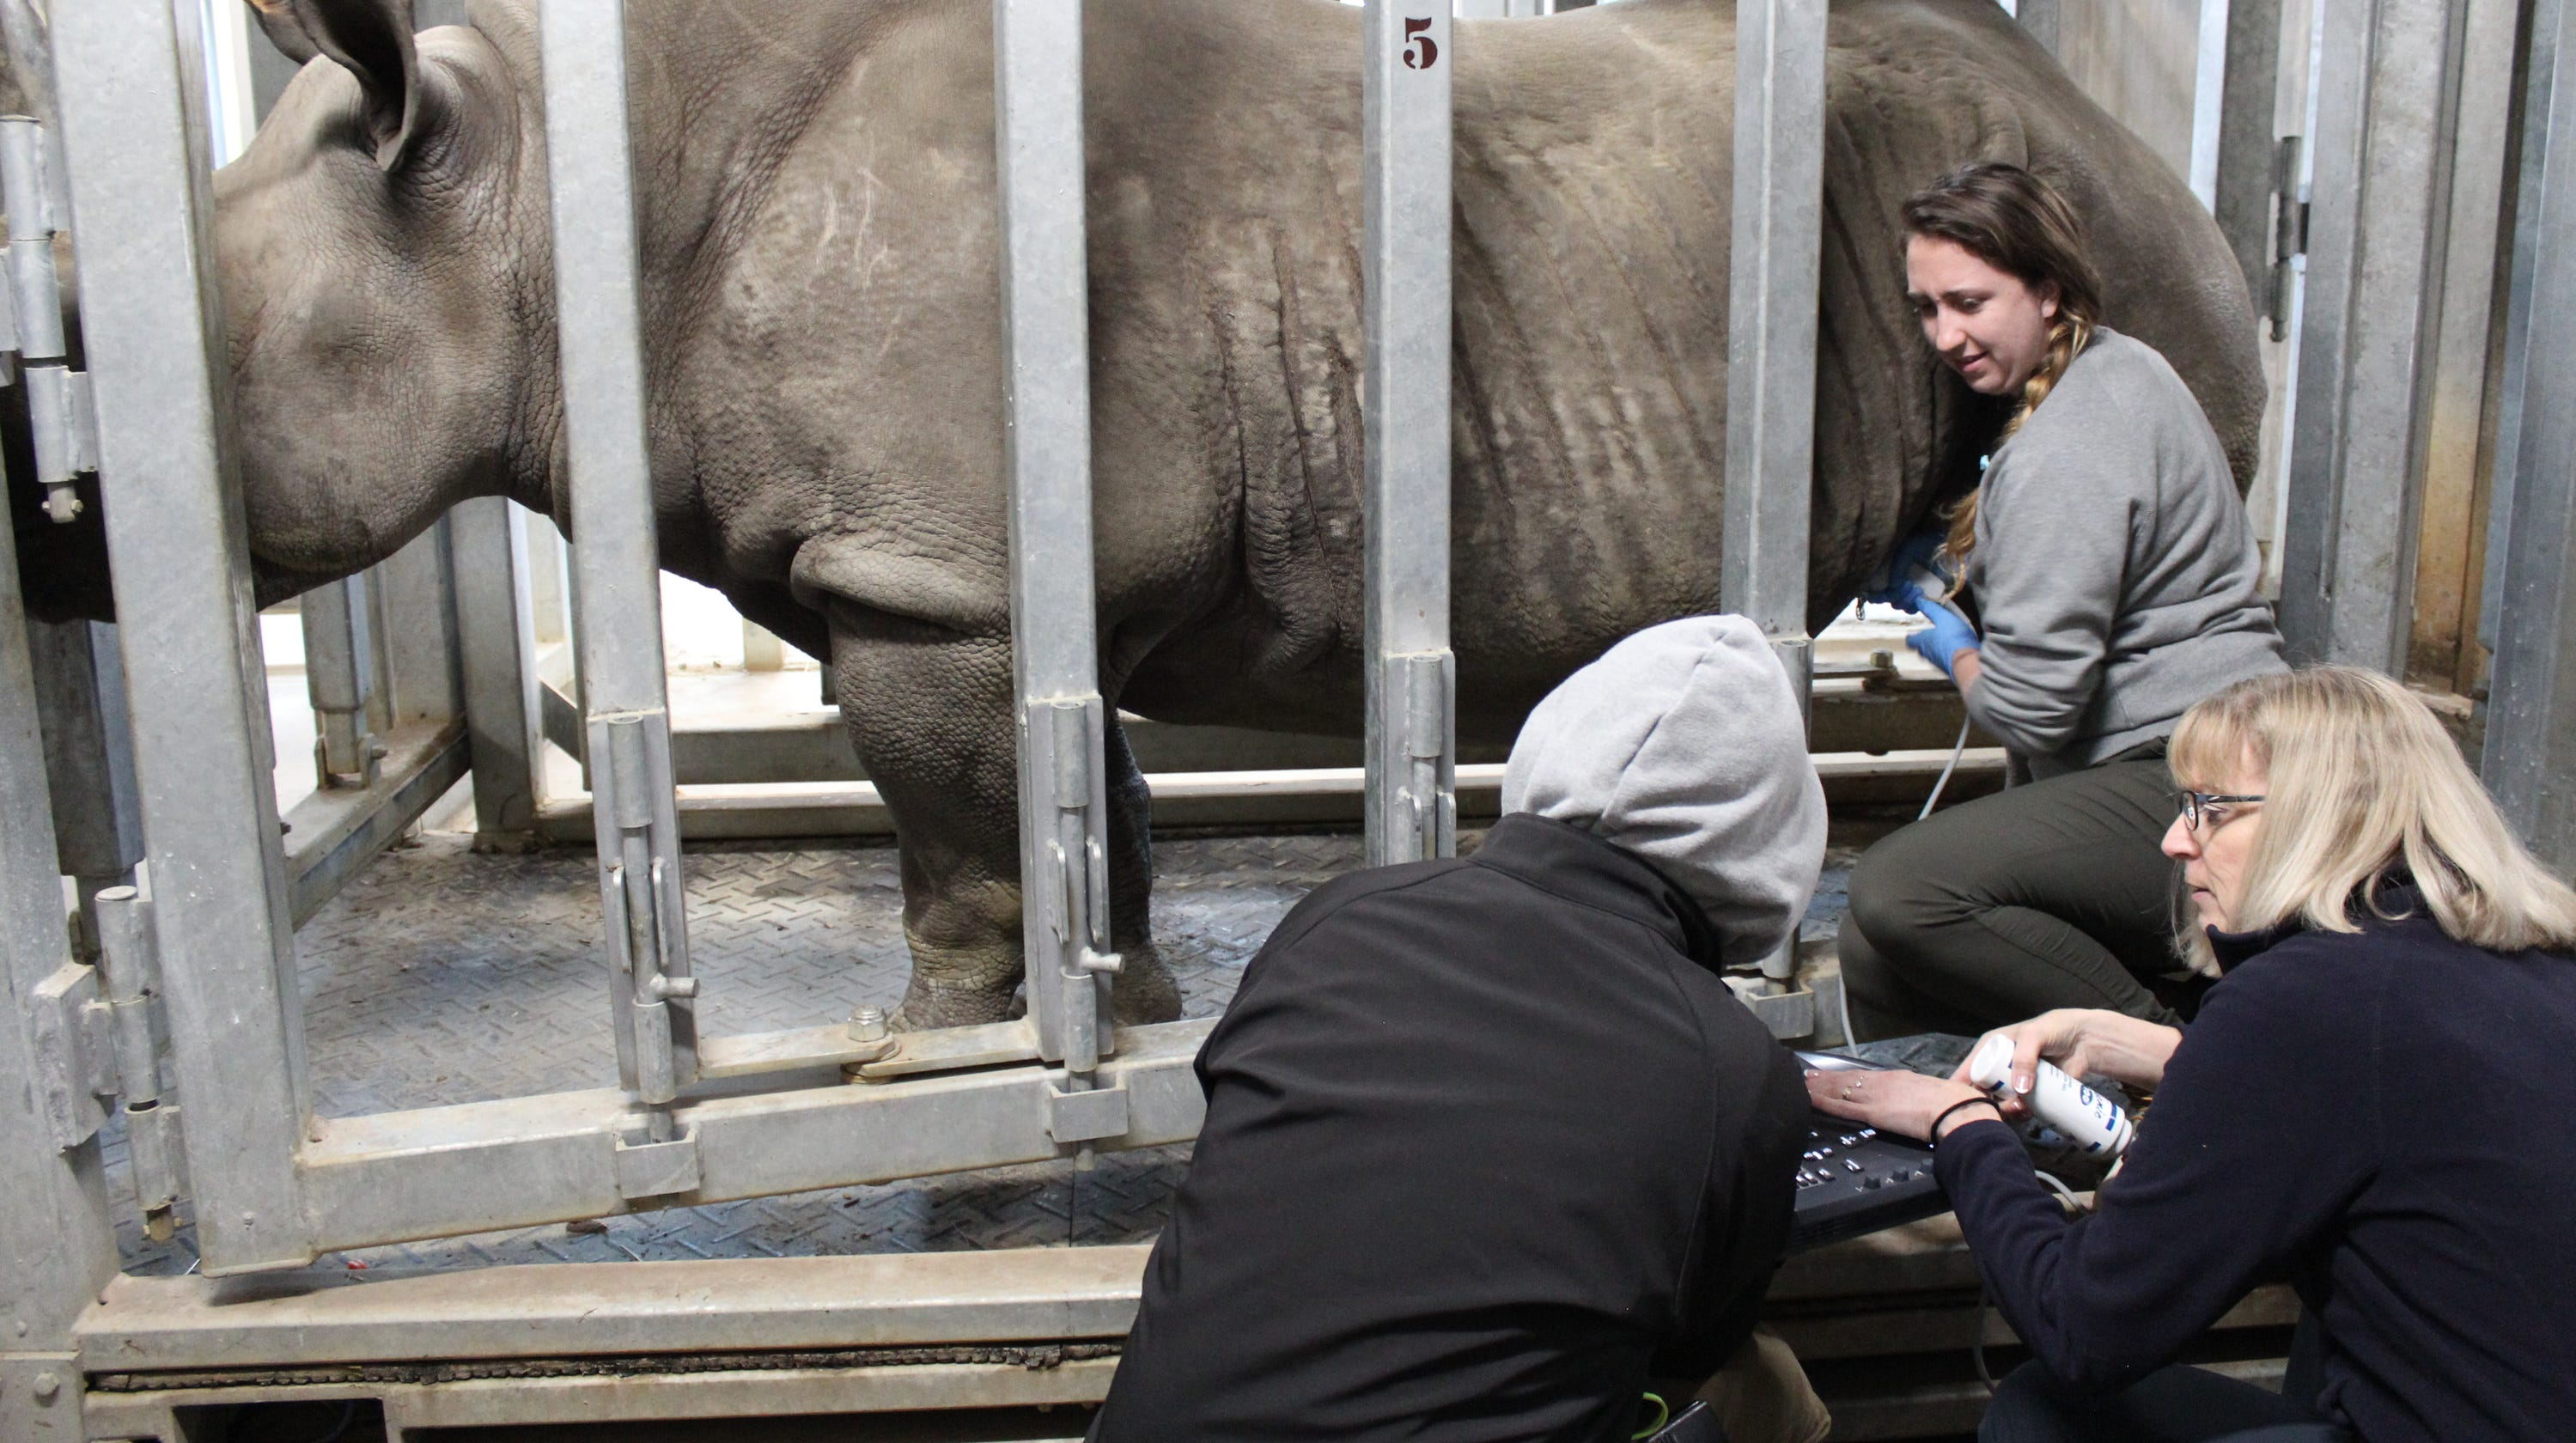 Blank Park Zoo's eastern black rhinos are expecting their second baby